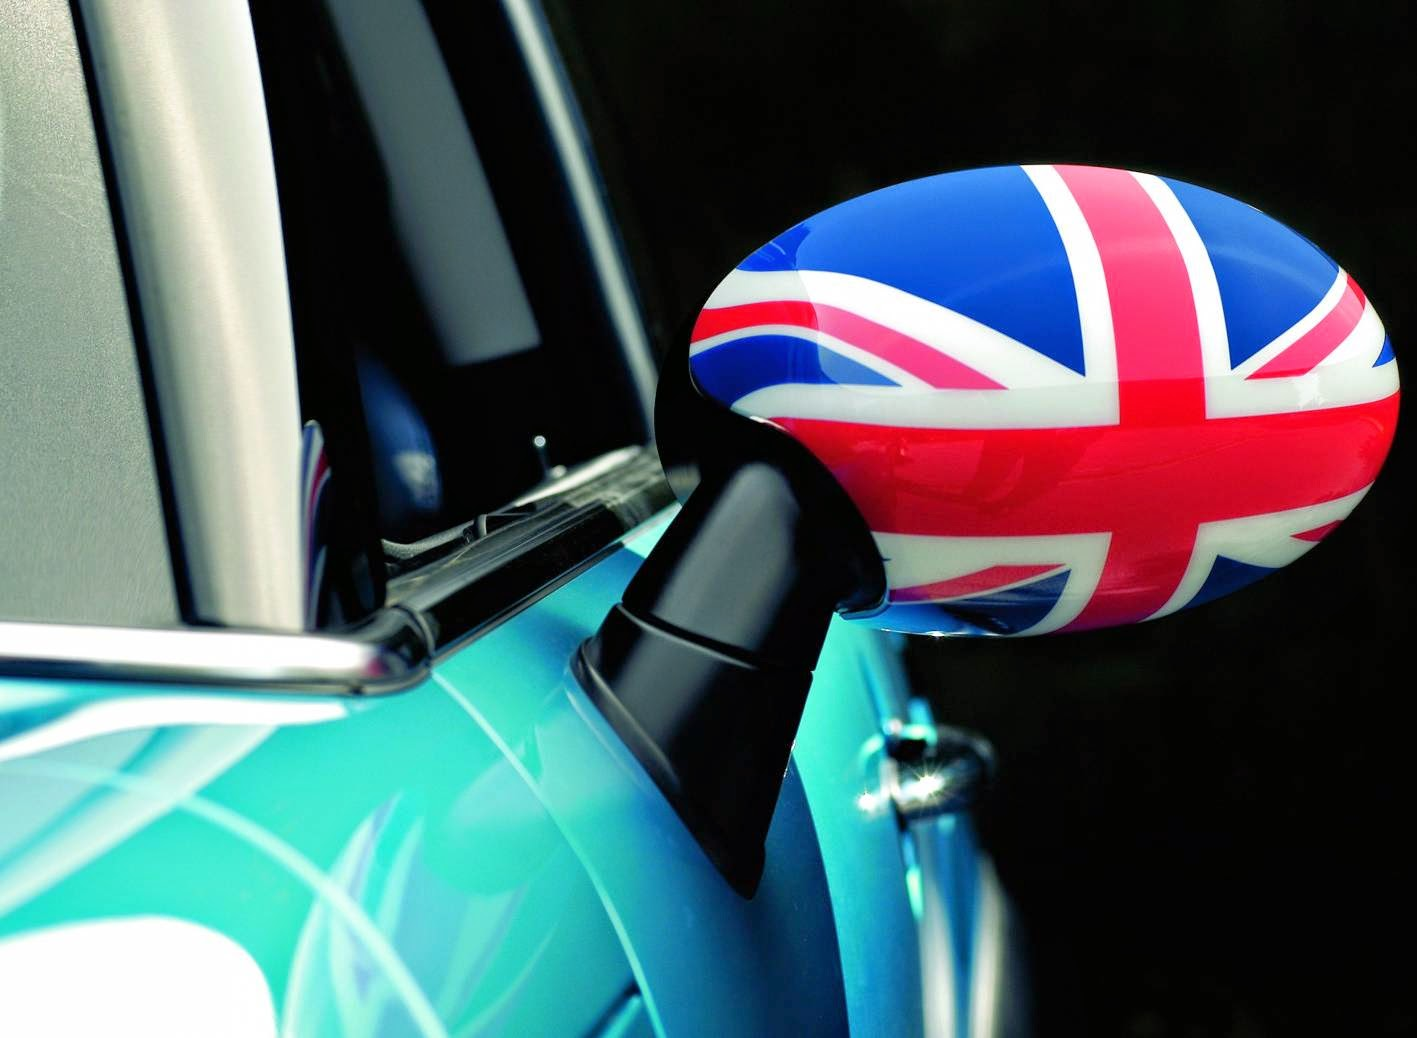 Minis have always been customisable with graphics or patriotic flags